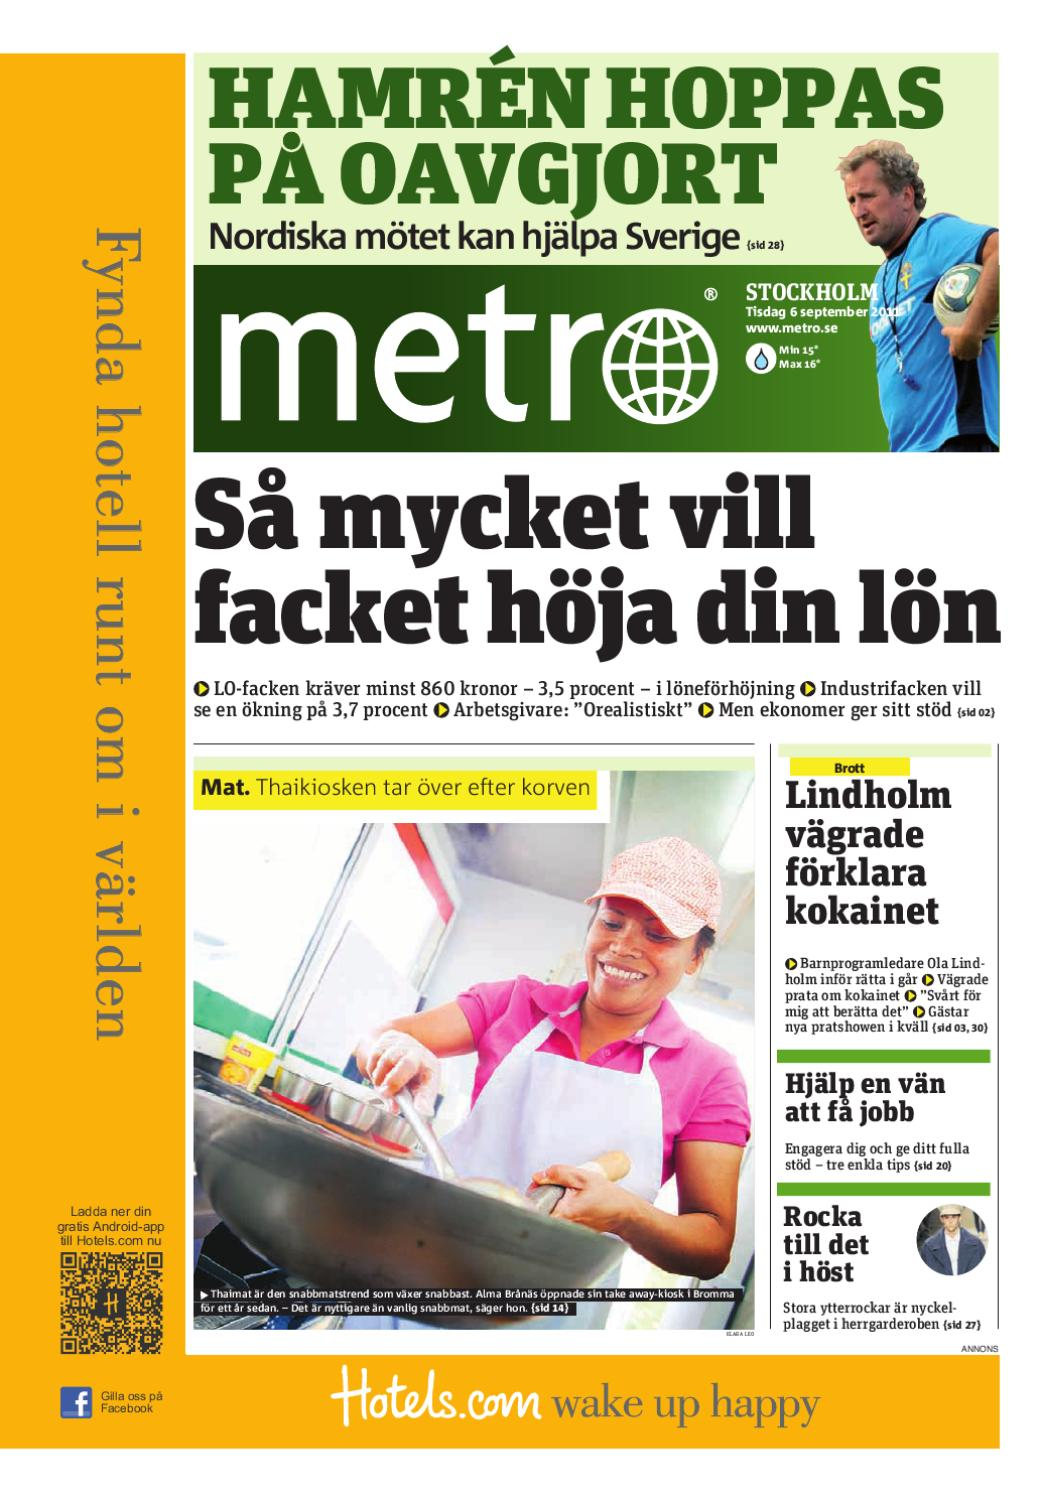 20110906 se stockholm by Metro Sweden - issuu d15d7266710f9